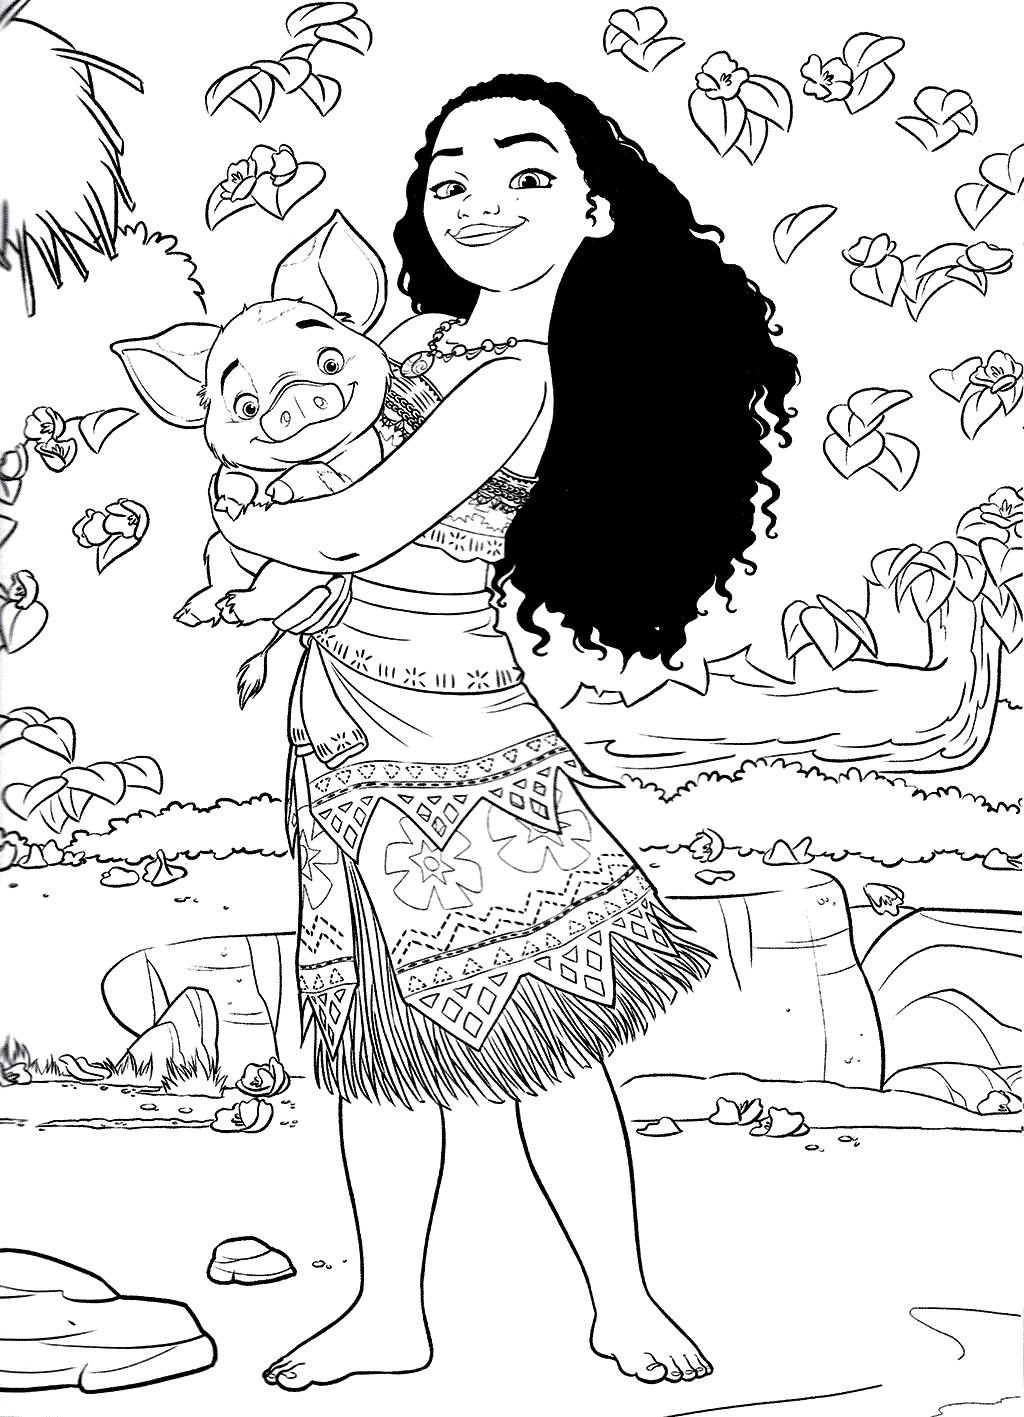 Top 10 Moana Coloring Pages- Free Printables | Ausmalbilder ...